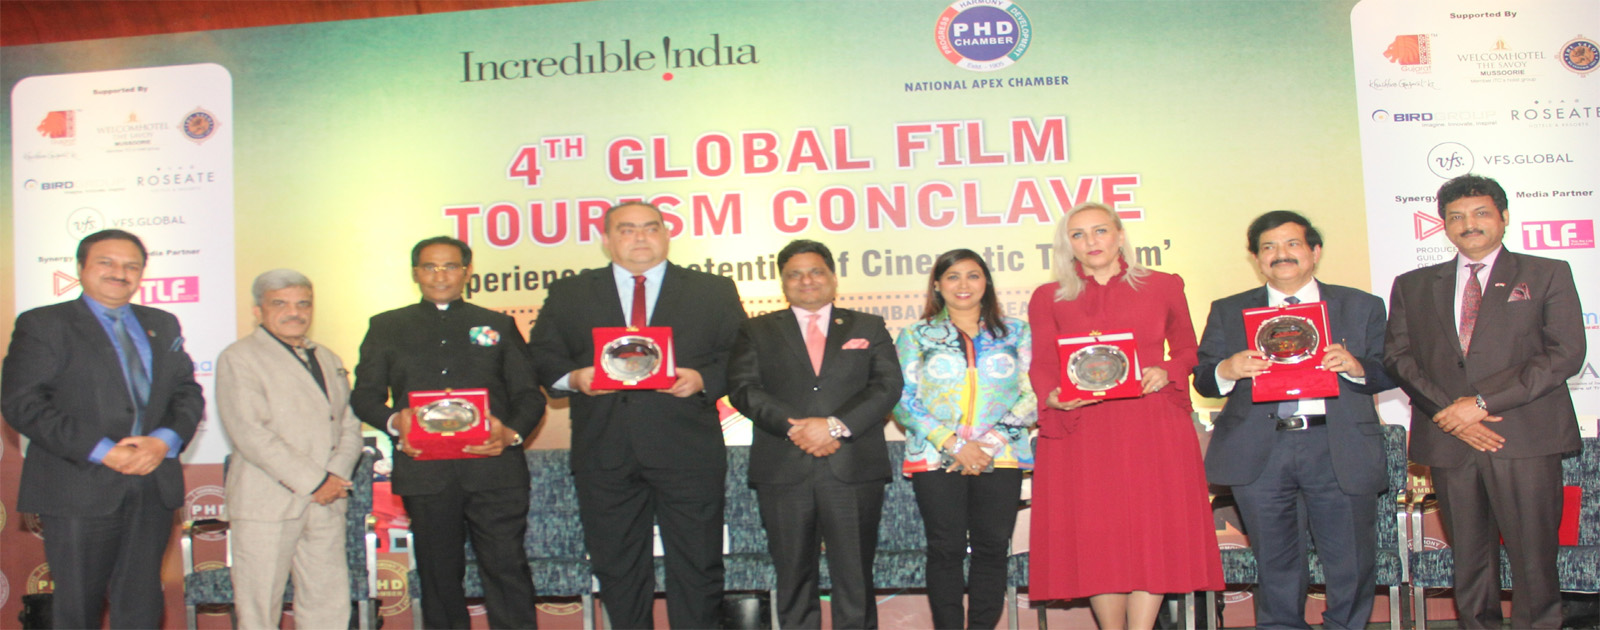 Global Film Tourism Conclave